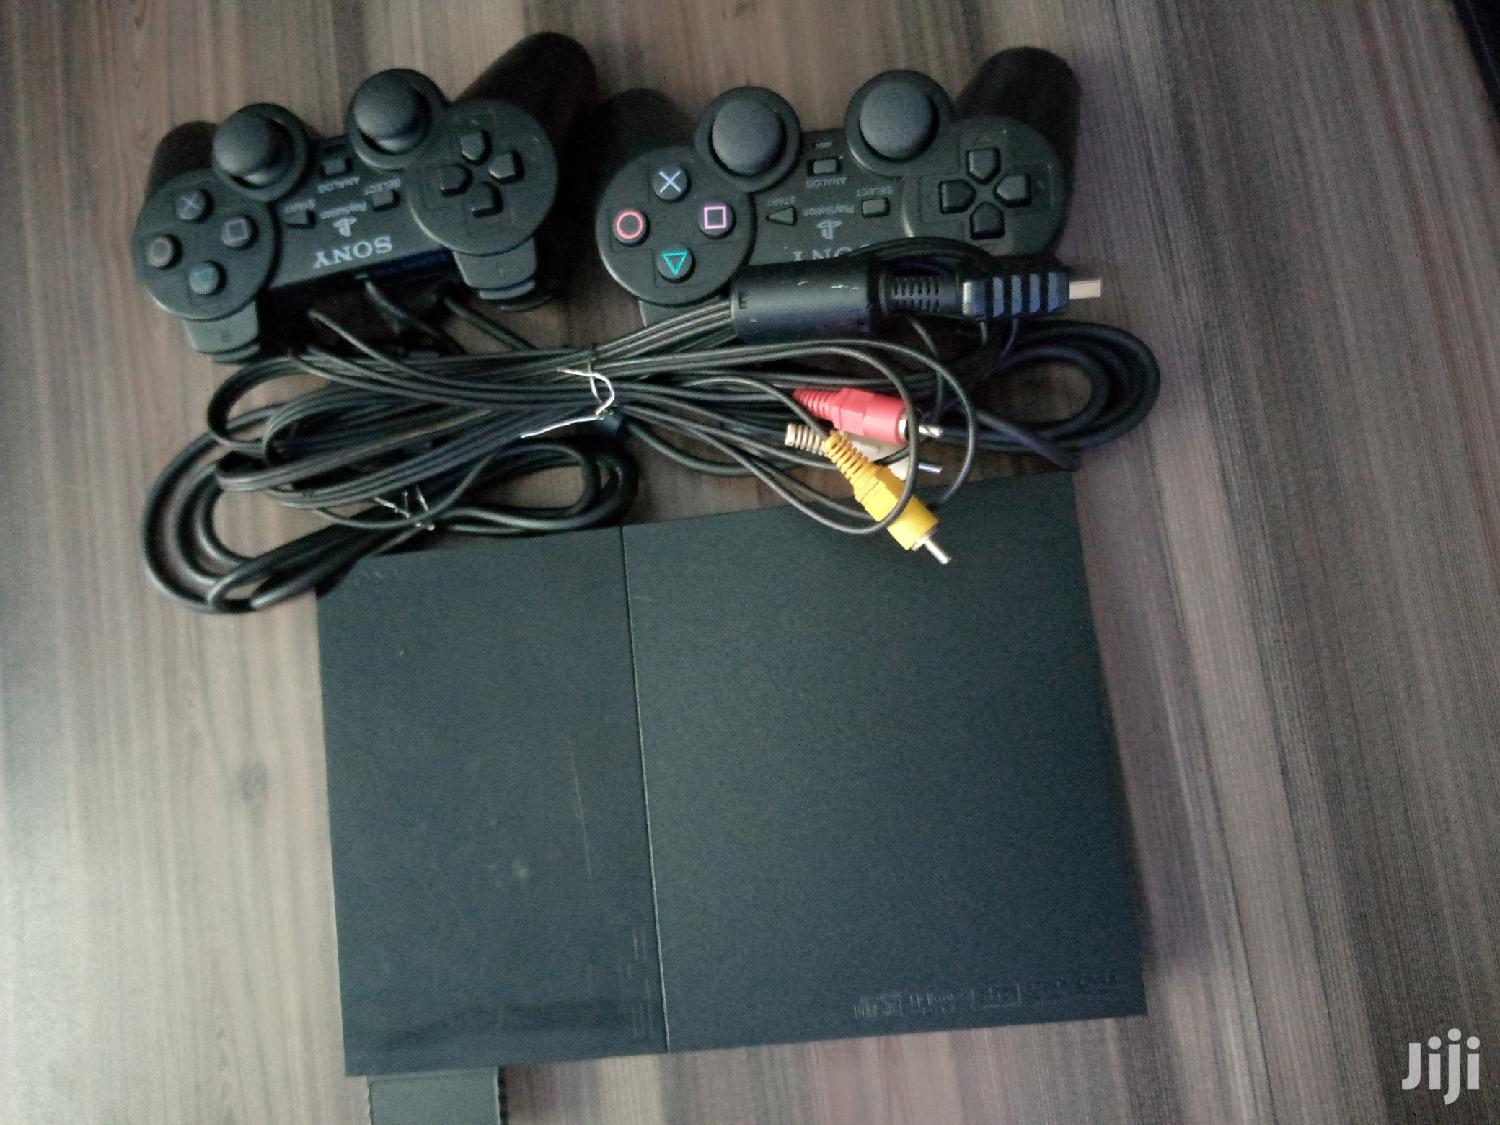 Archive: Playstation 2 Video Game Console